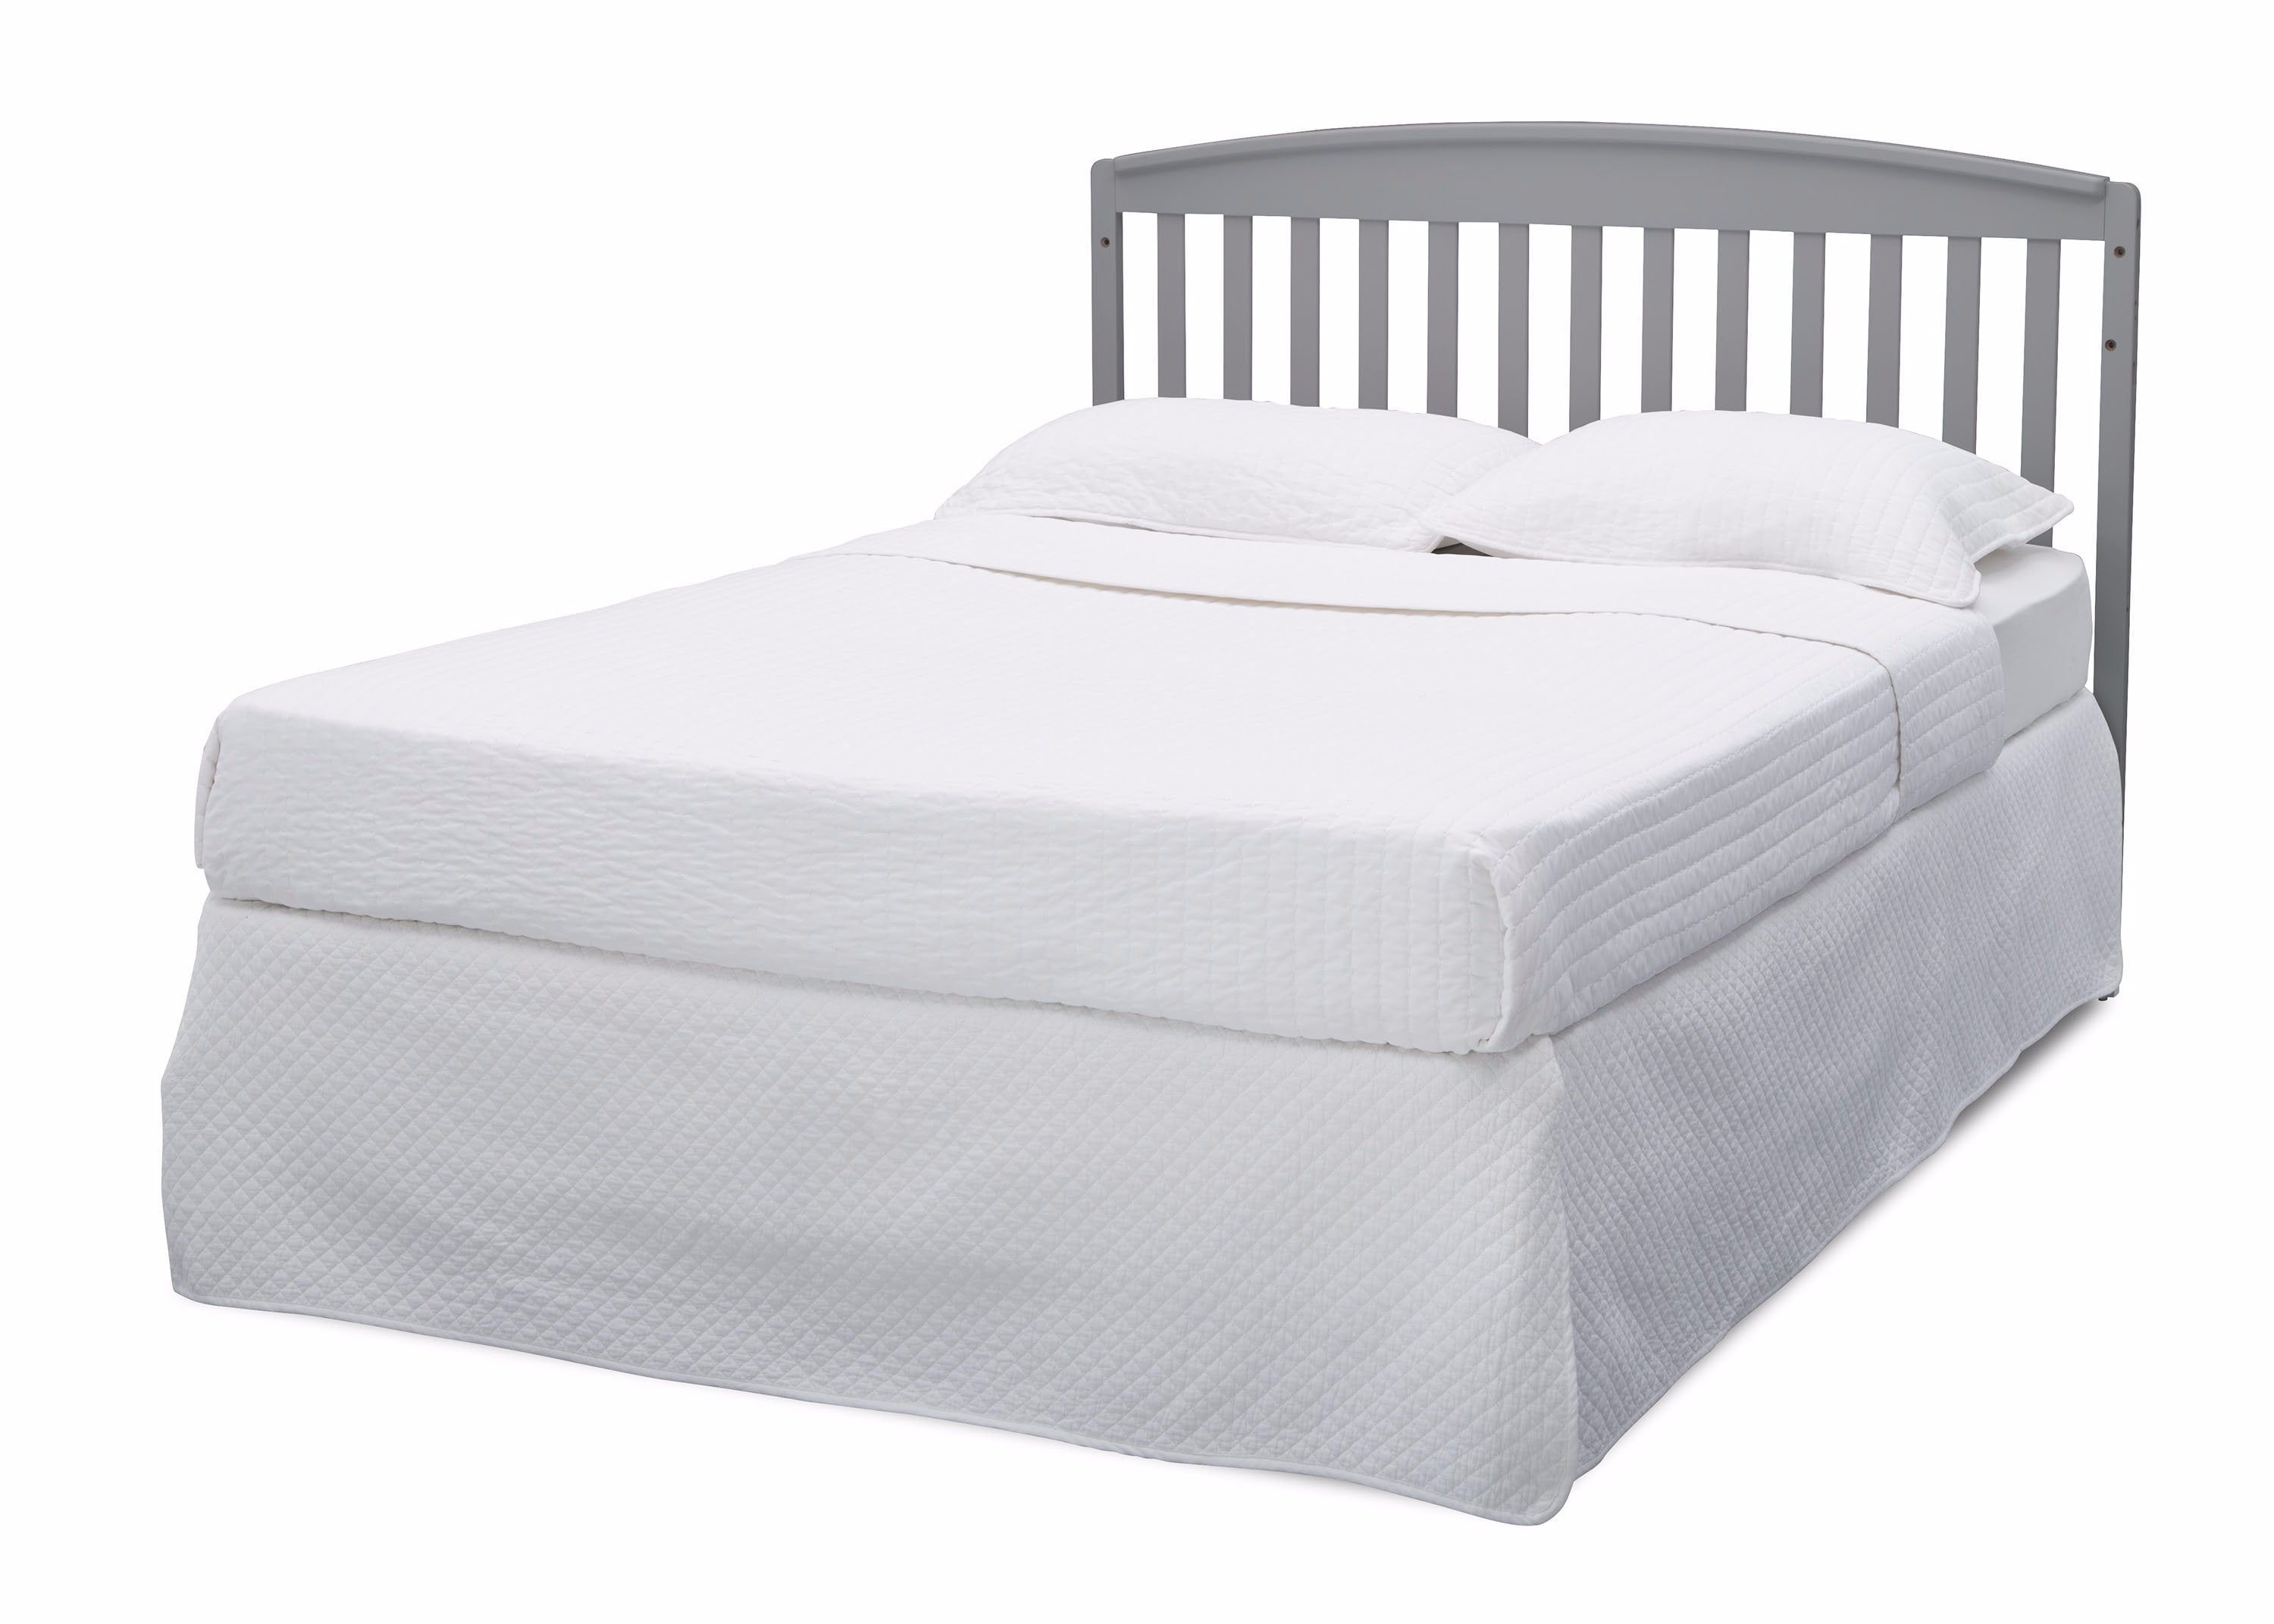 furniture modern affordable white bianca baxton bedroom headboard full bed with size mattress studio tufted